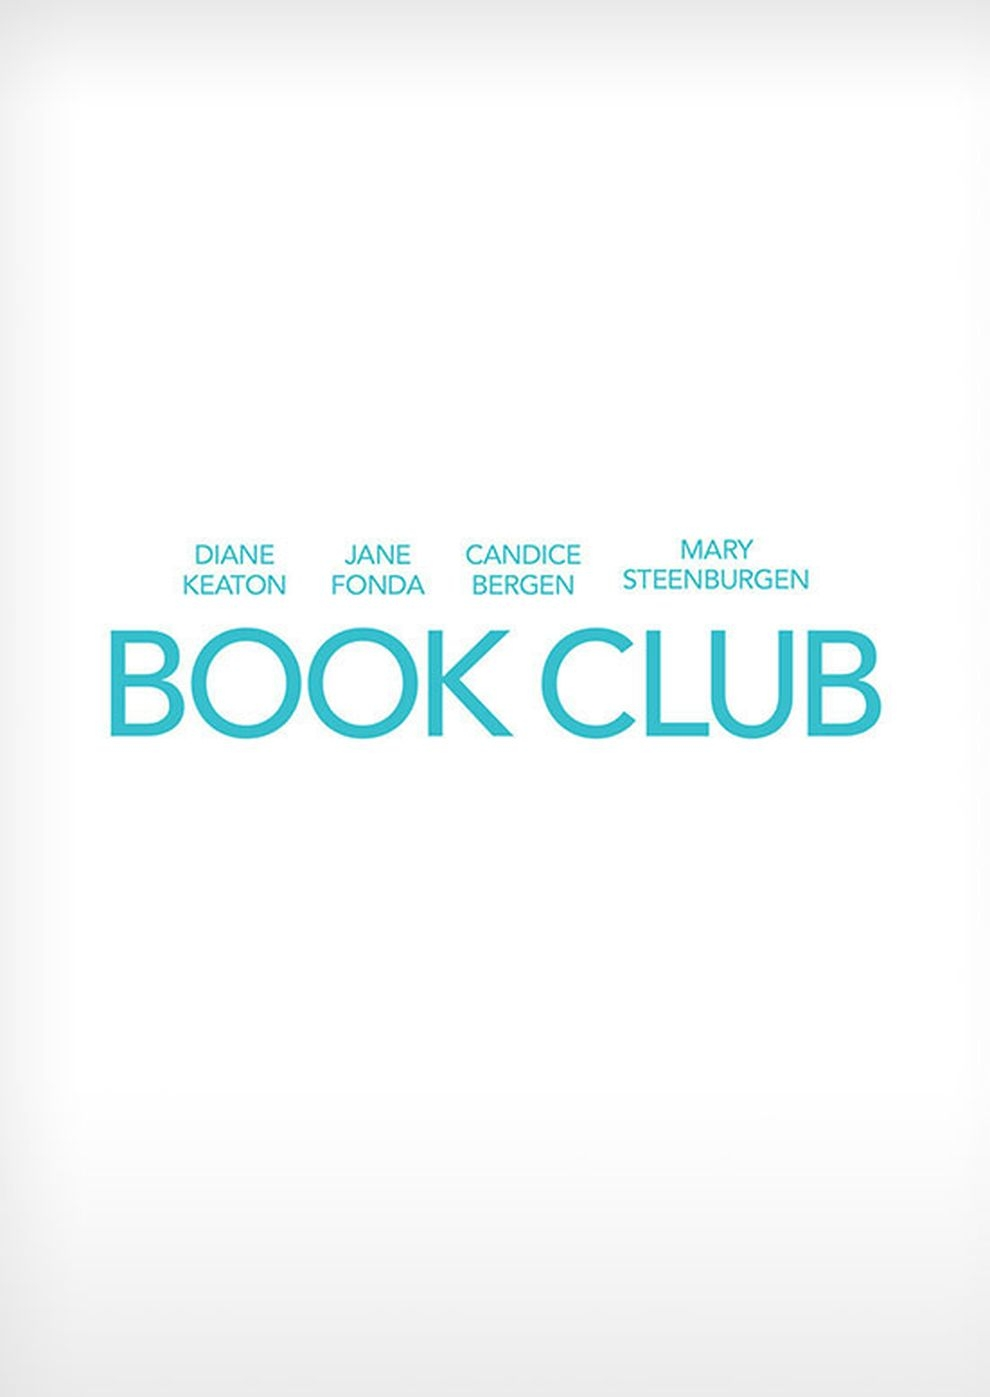 Book Club (Poster)